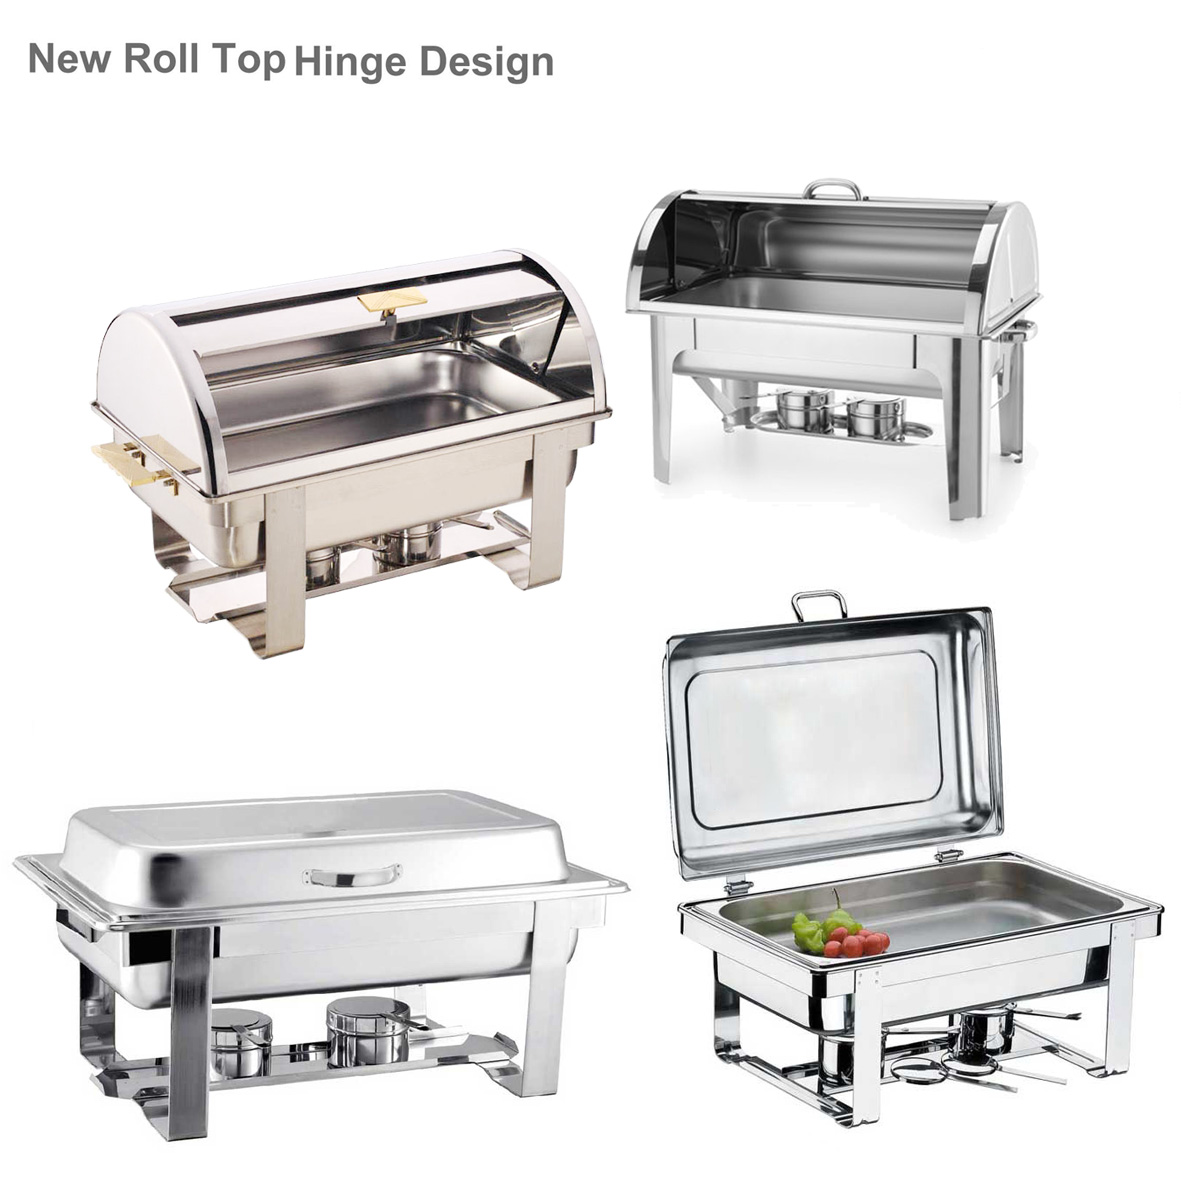 Deluxe Roll Top guangzhou chafing dish